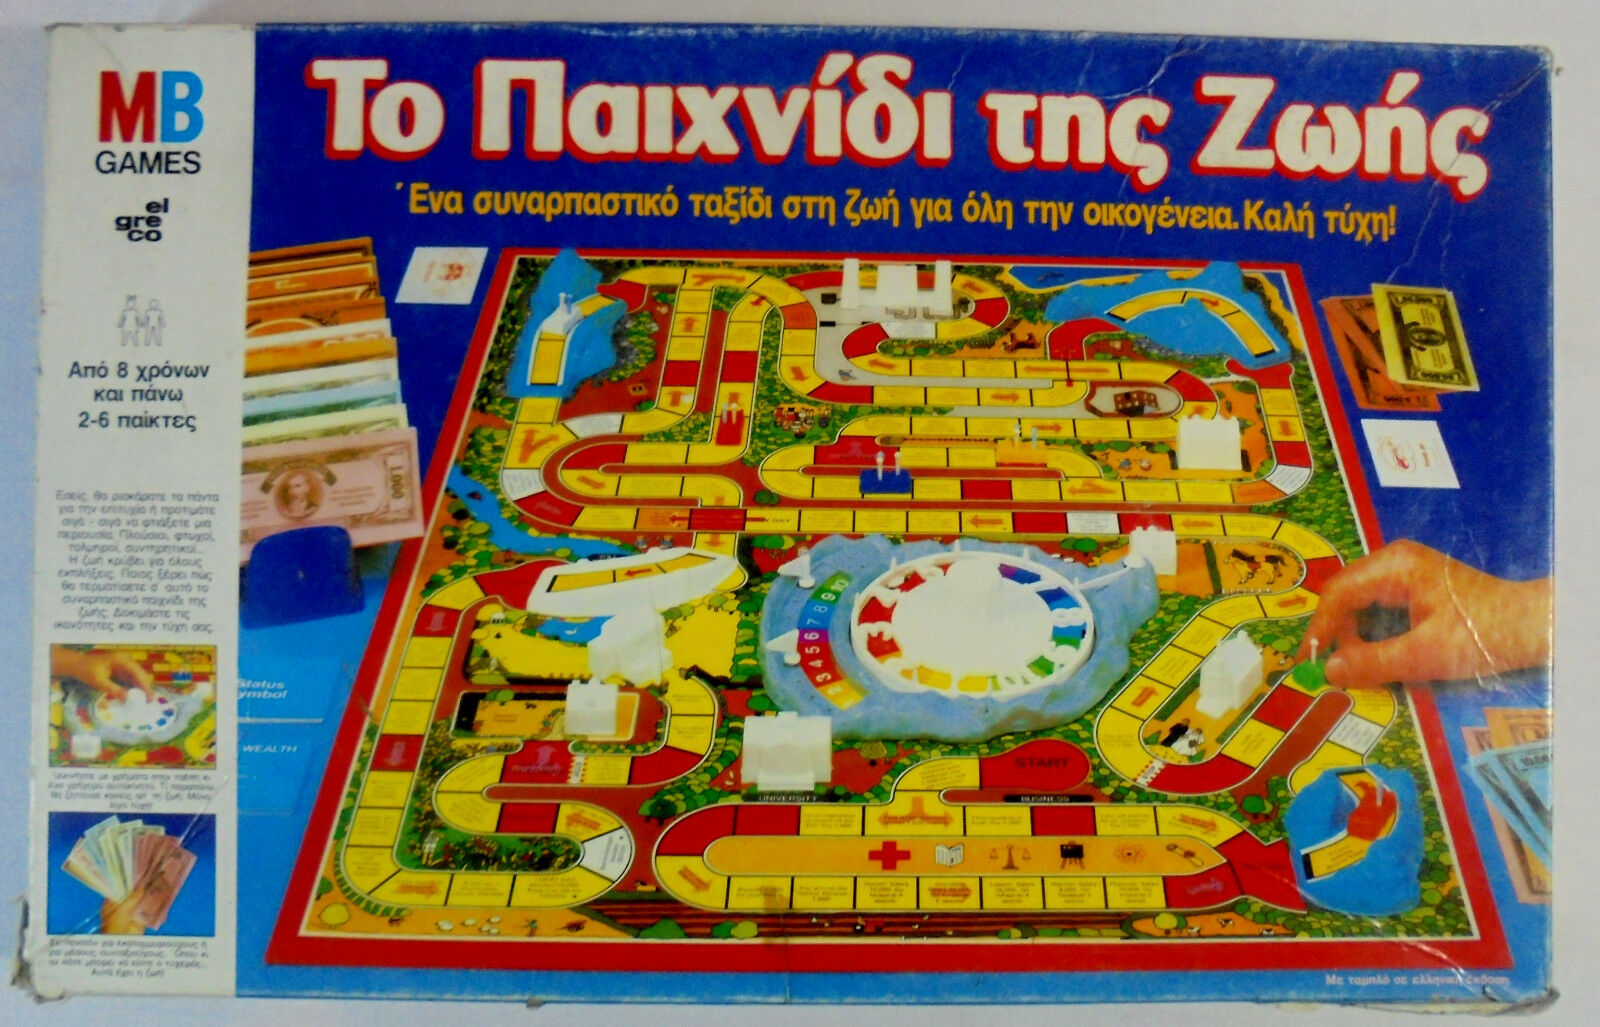 EL GRECO MB VTG 80's GAME OF LIFE LIFE LIFE GREEK BOARD GAME 99% COMPLETE BOXED VERY RARE 4f5227